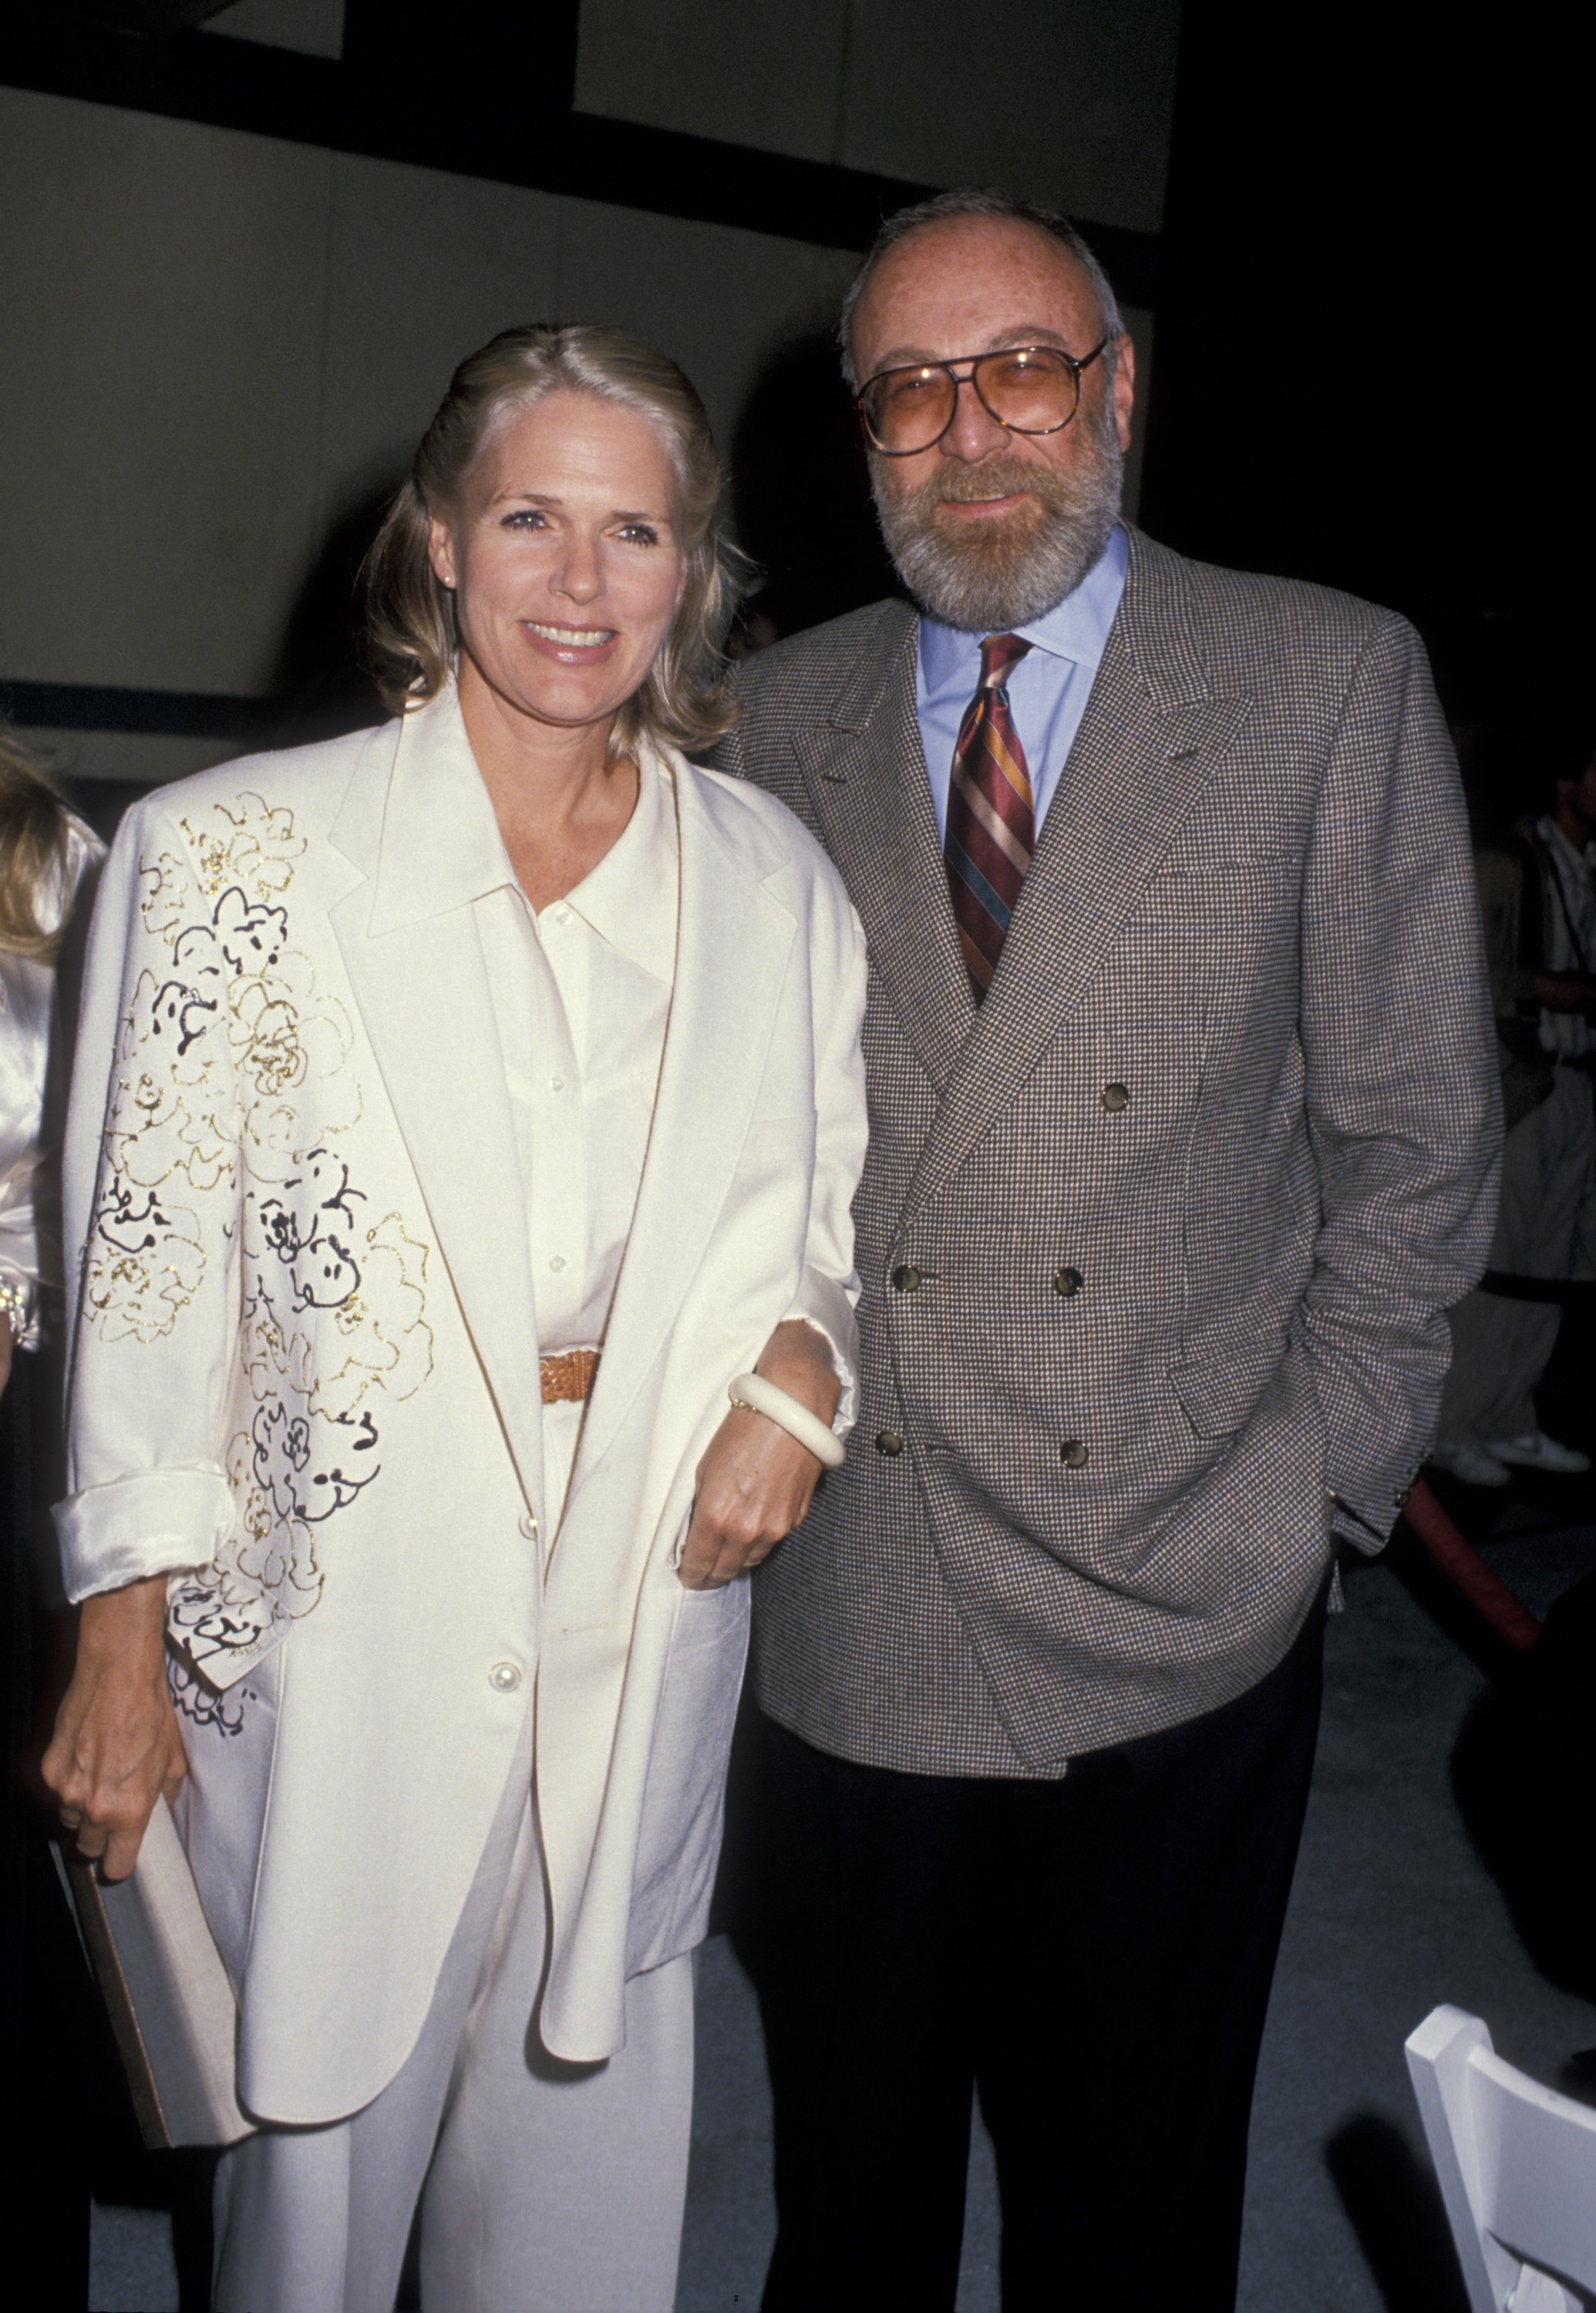 Sharon Gless and Barney Rosenzweig on September 22, 1988 in Beverly Hills, California | Photo: Getty Images/Global Images Ukraine